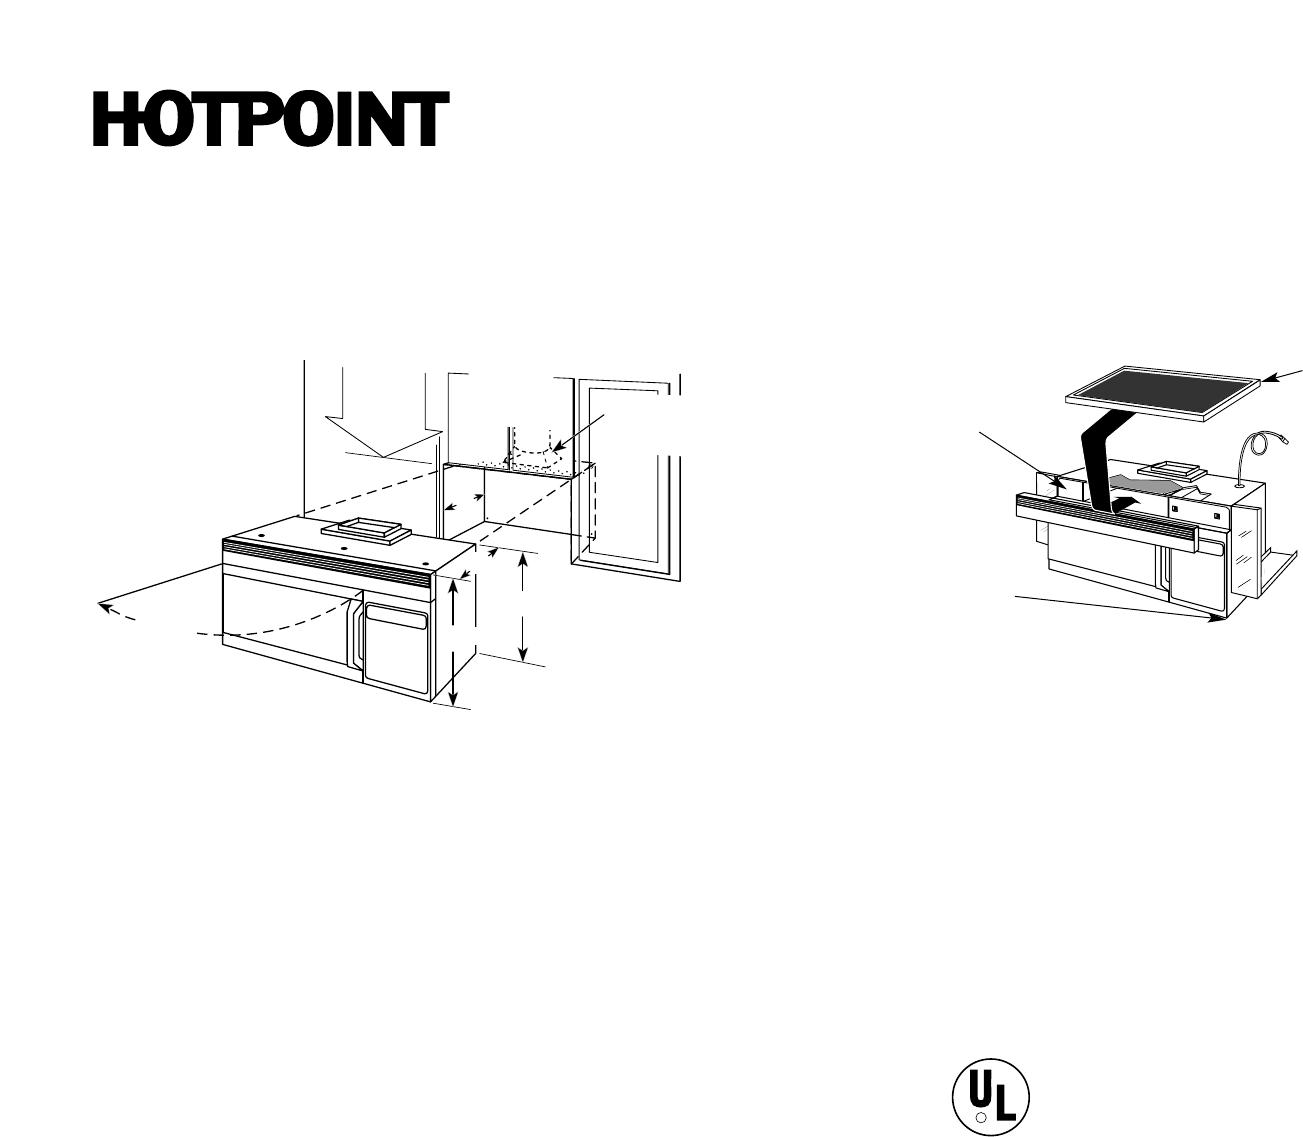 Hotpoint Microwave Oven RVM1335WC User Guide